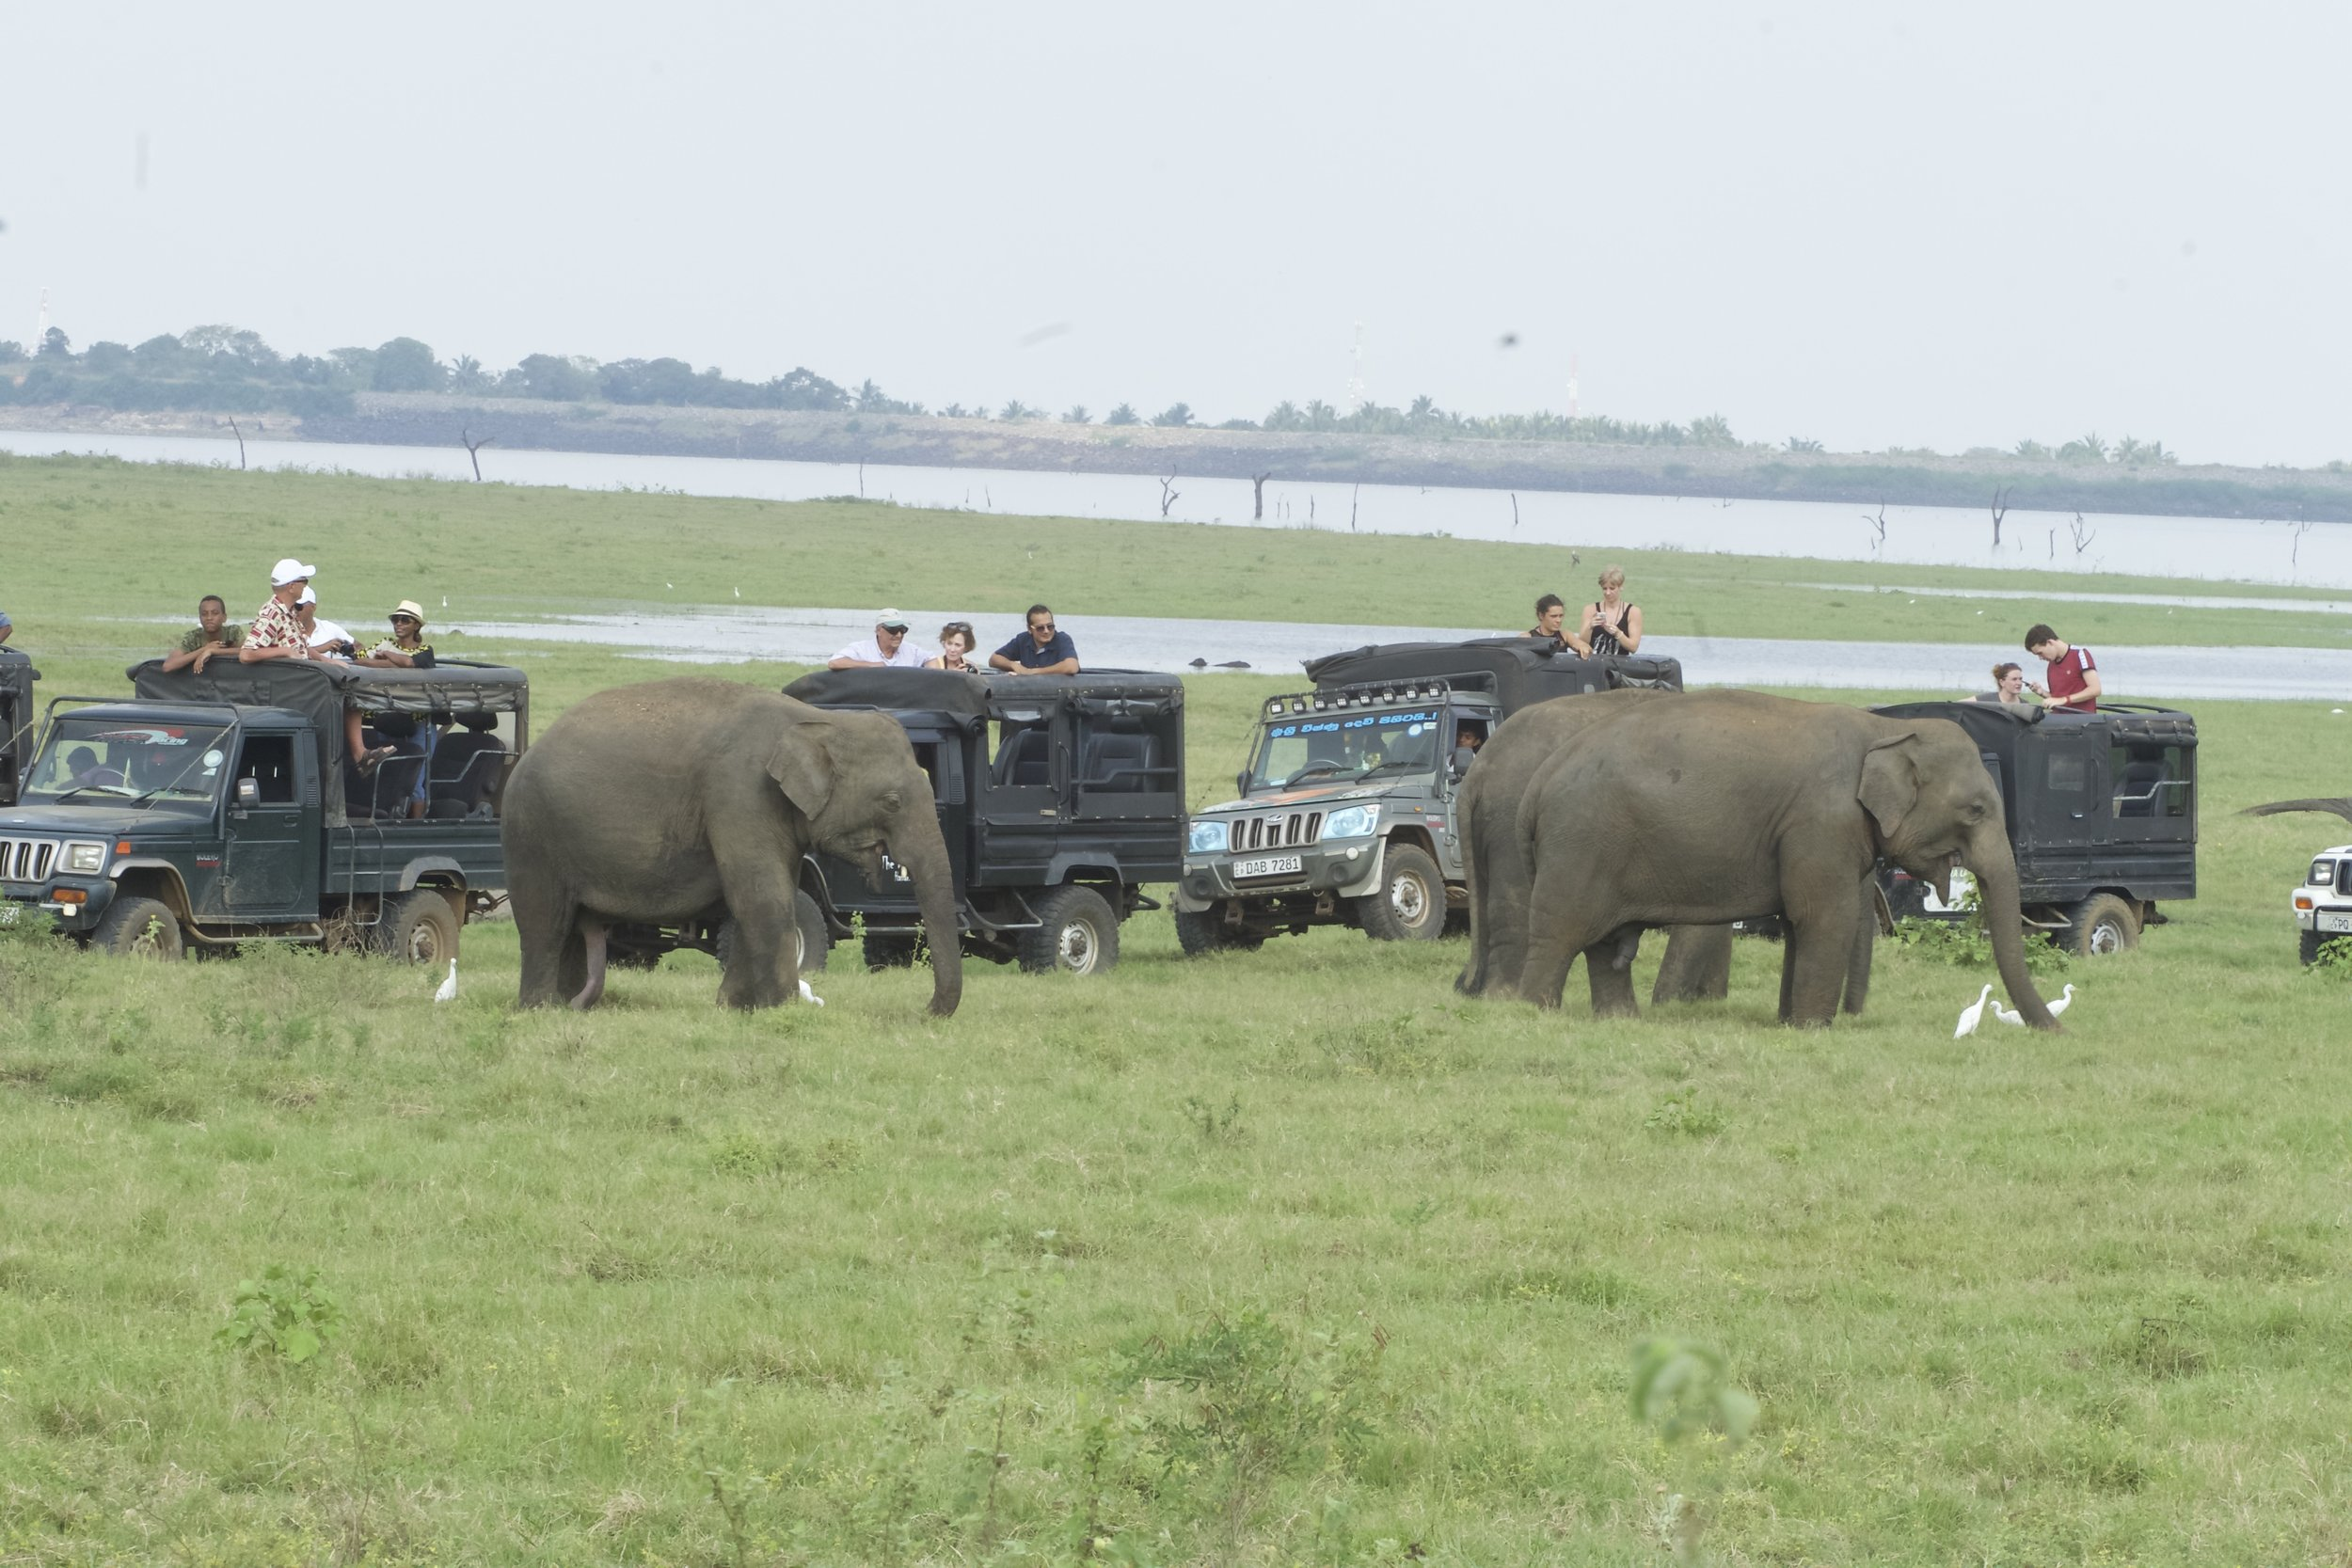 Services - We provide the logistical, translator, and expert support necessary to complete projects in a timely and economical manner. We are always on the front lines and are devoted to our elephants. We support tour companies thru our sister organization GeoWandering.com.